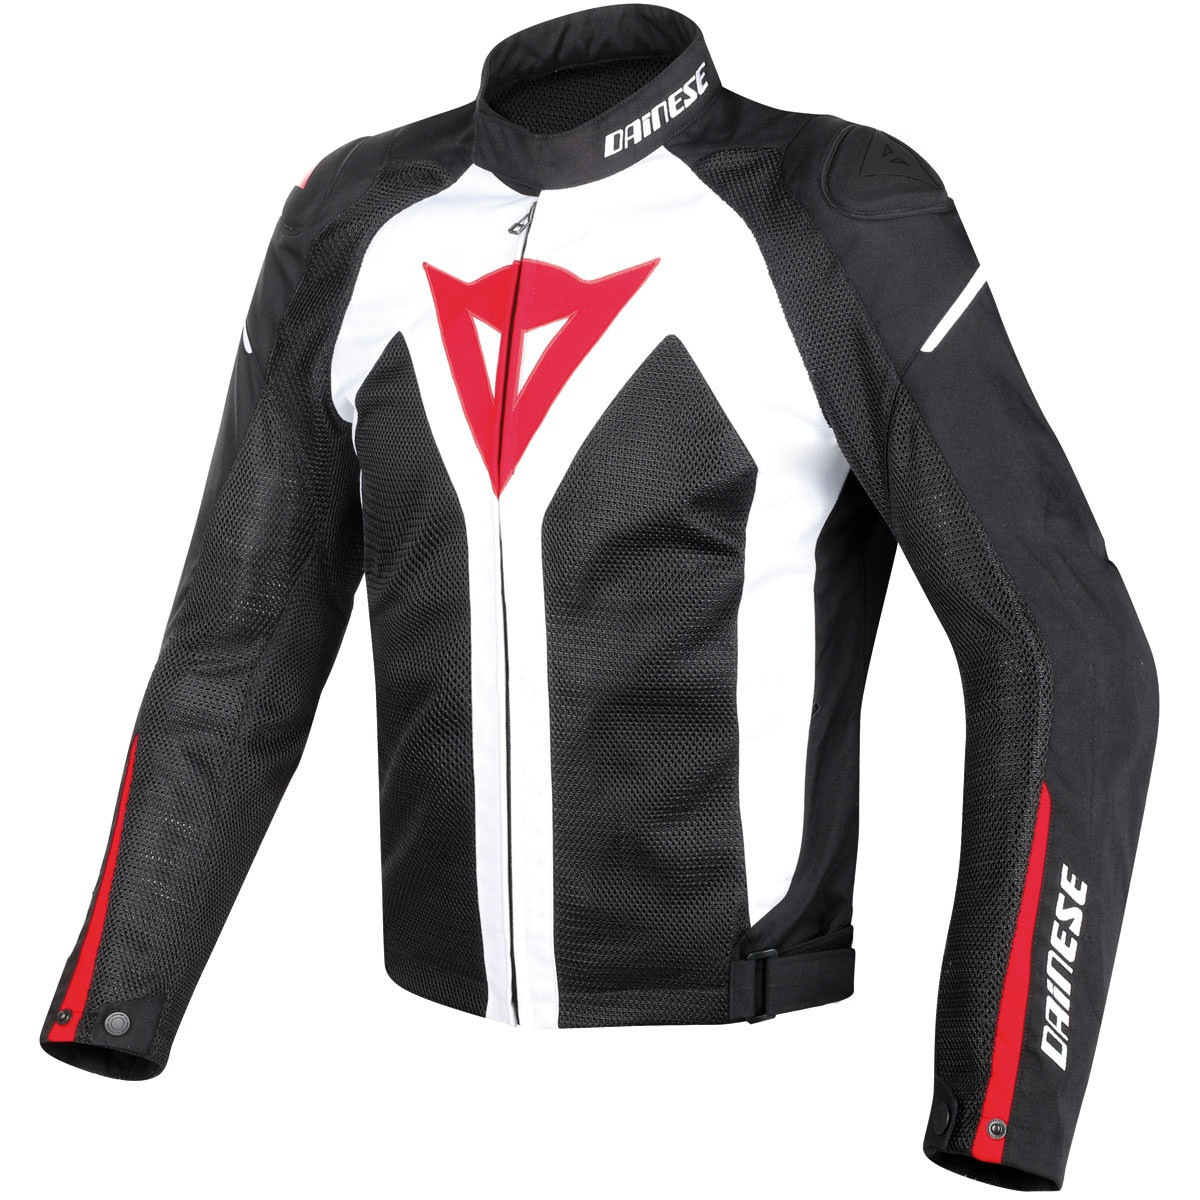 Giacca moto Dainese Hyper Flux D Dry bianco nero rosso